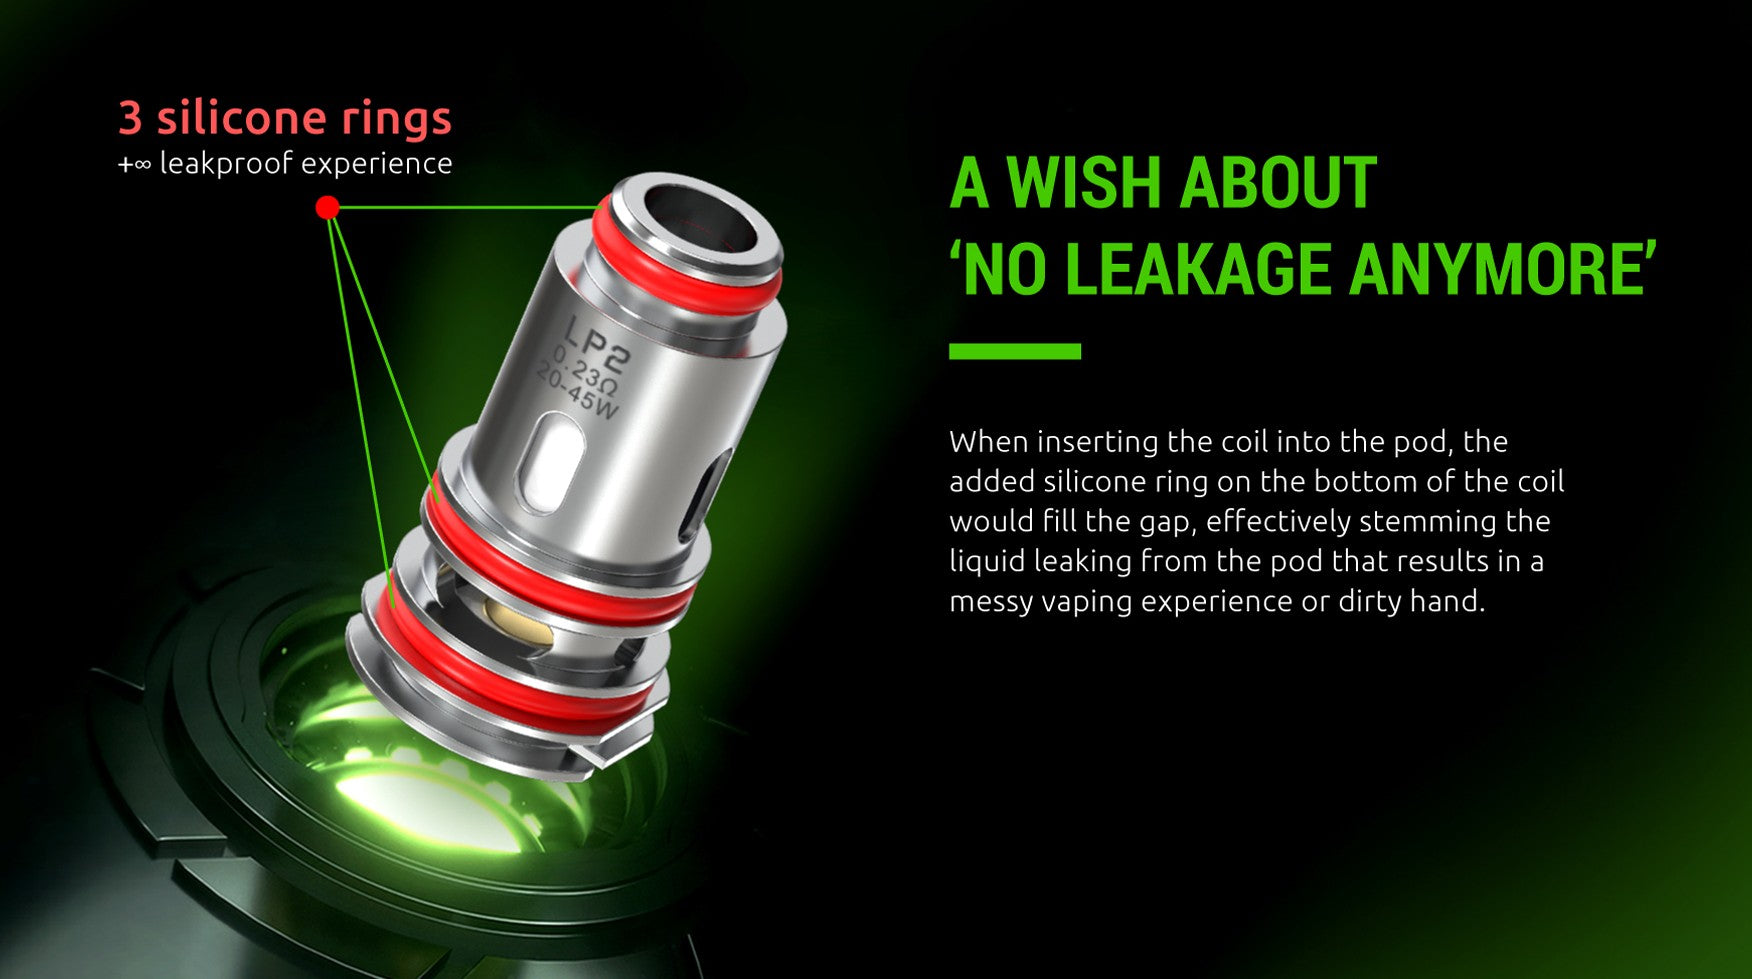 SMOK LP2 Coils with leak proof technology